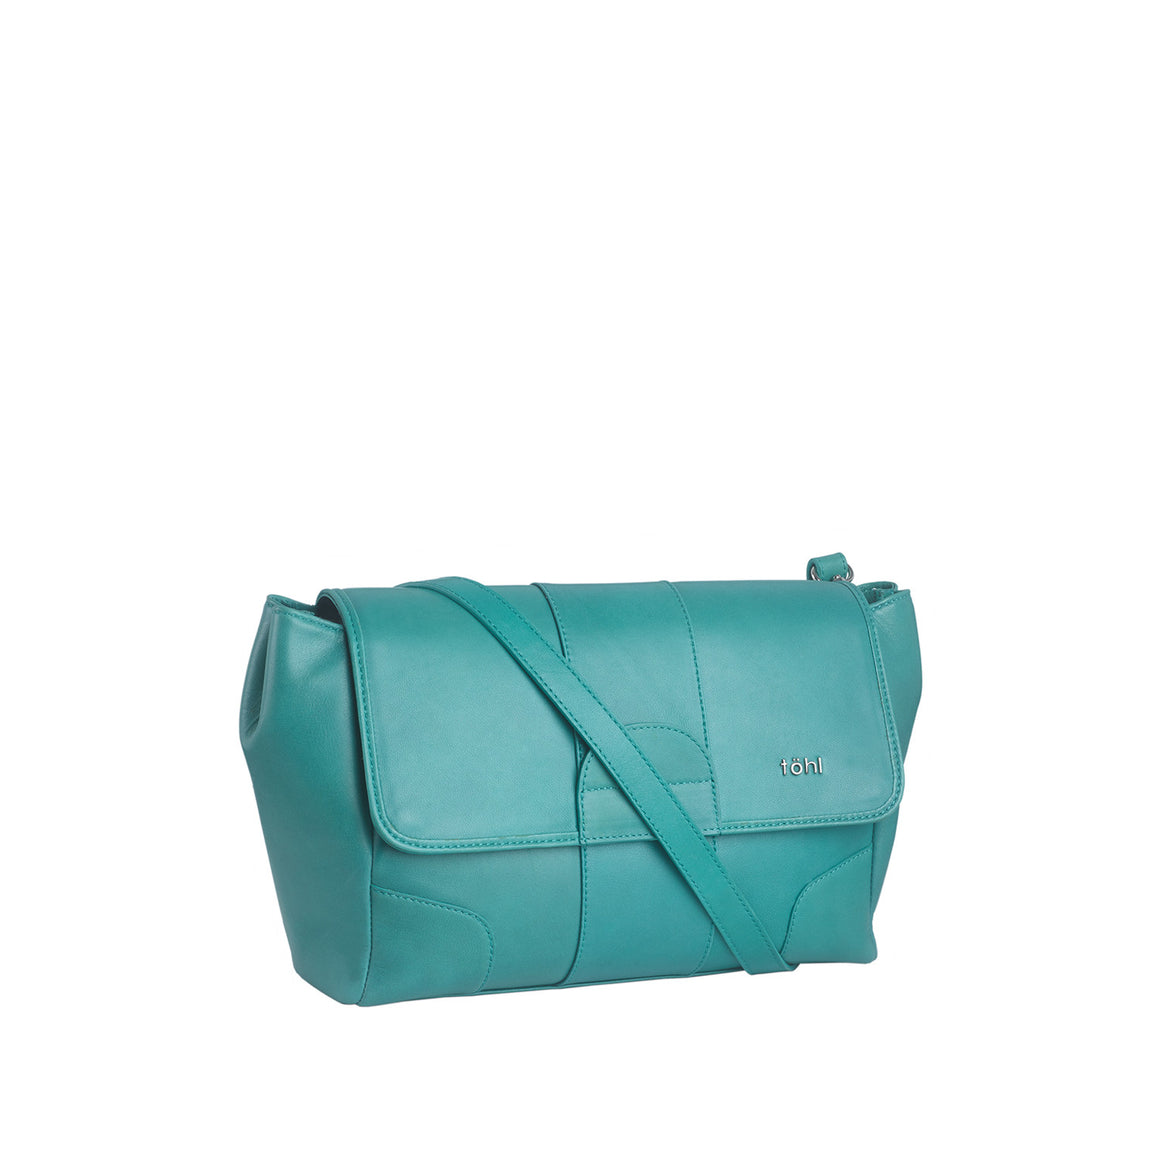 HH 0012 - TOHL JOPLIN WOMEN'S DAY BAG - TURKIS